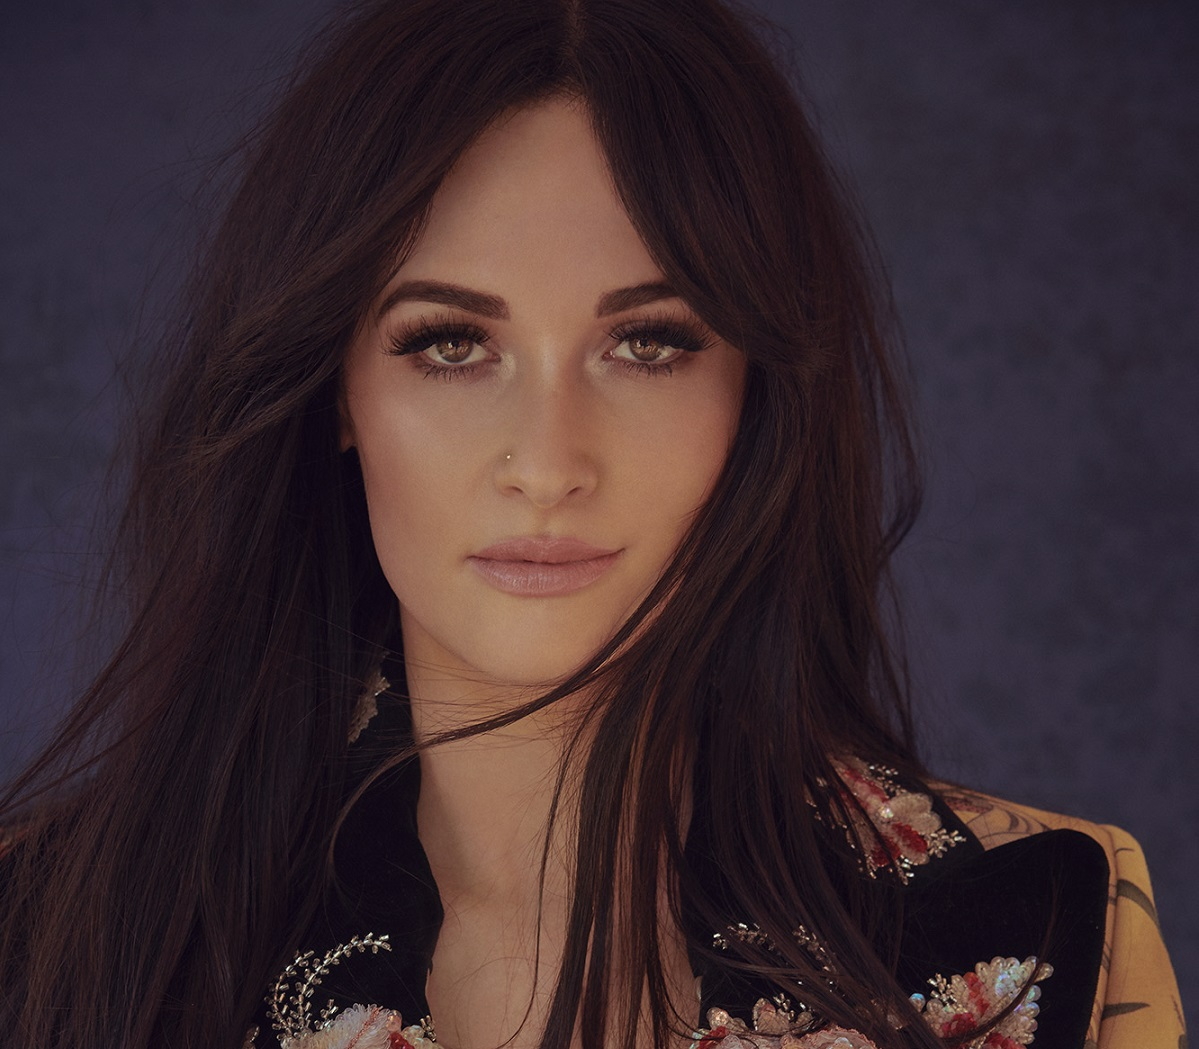 Kacey Musgraves Found Inspiration for 'Butterflies' From Her Husband